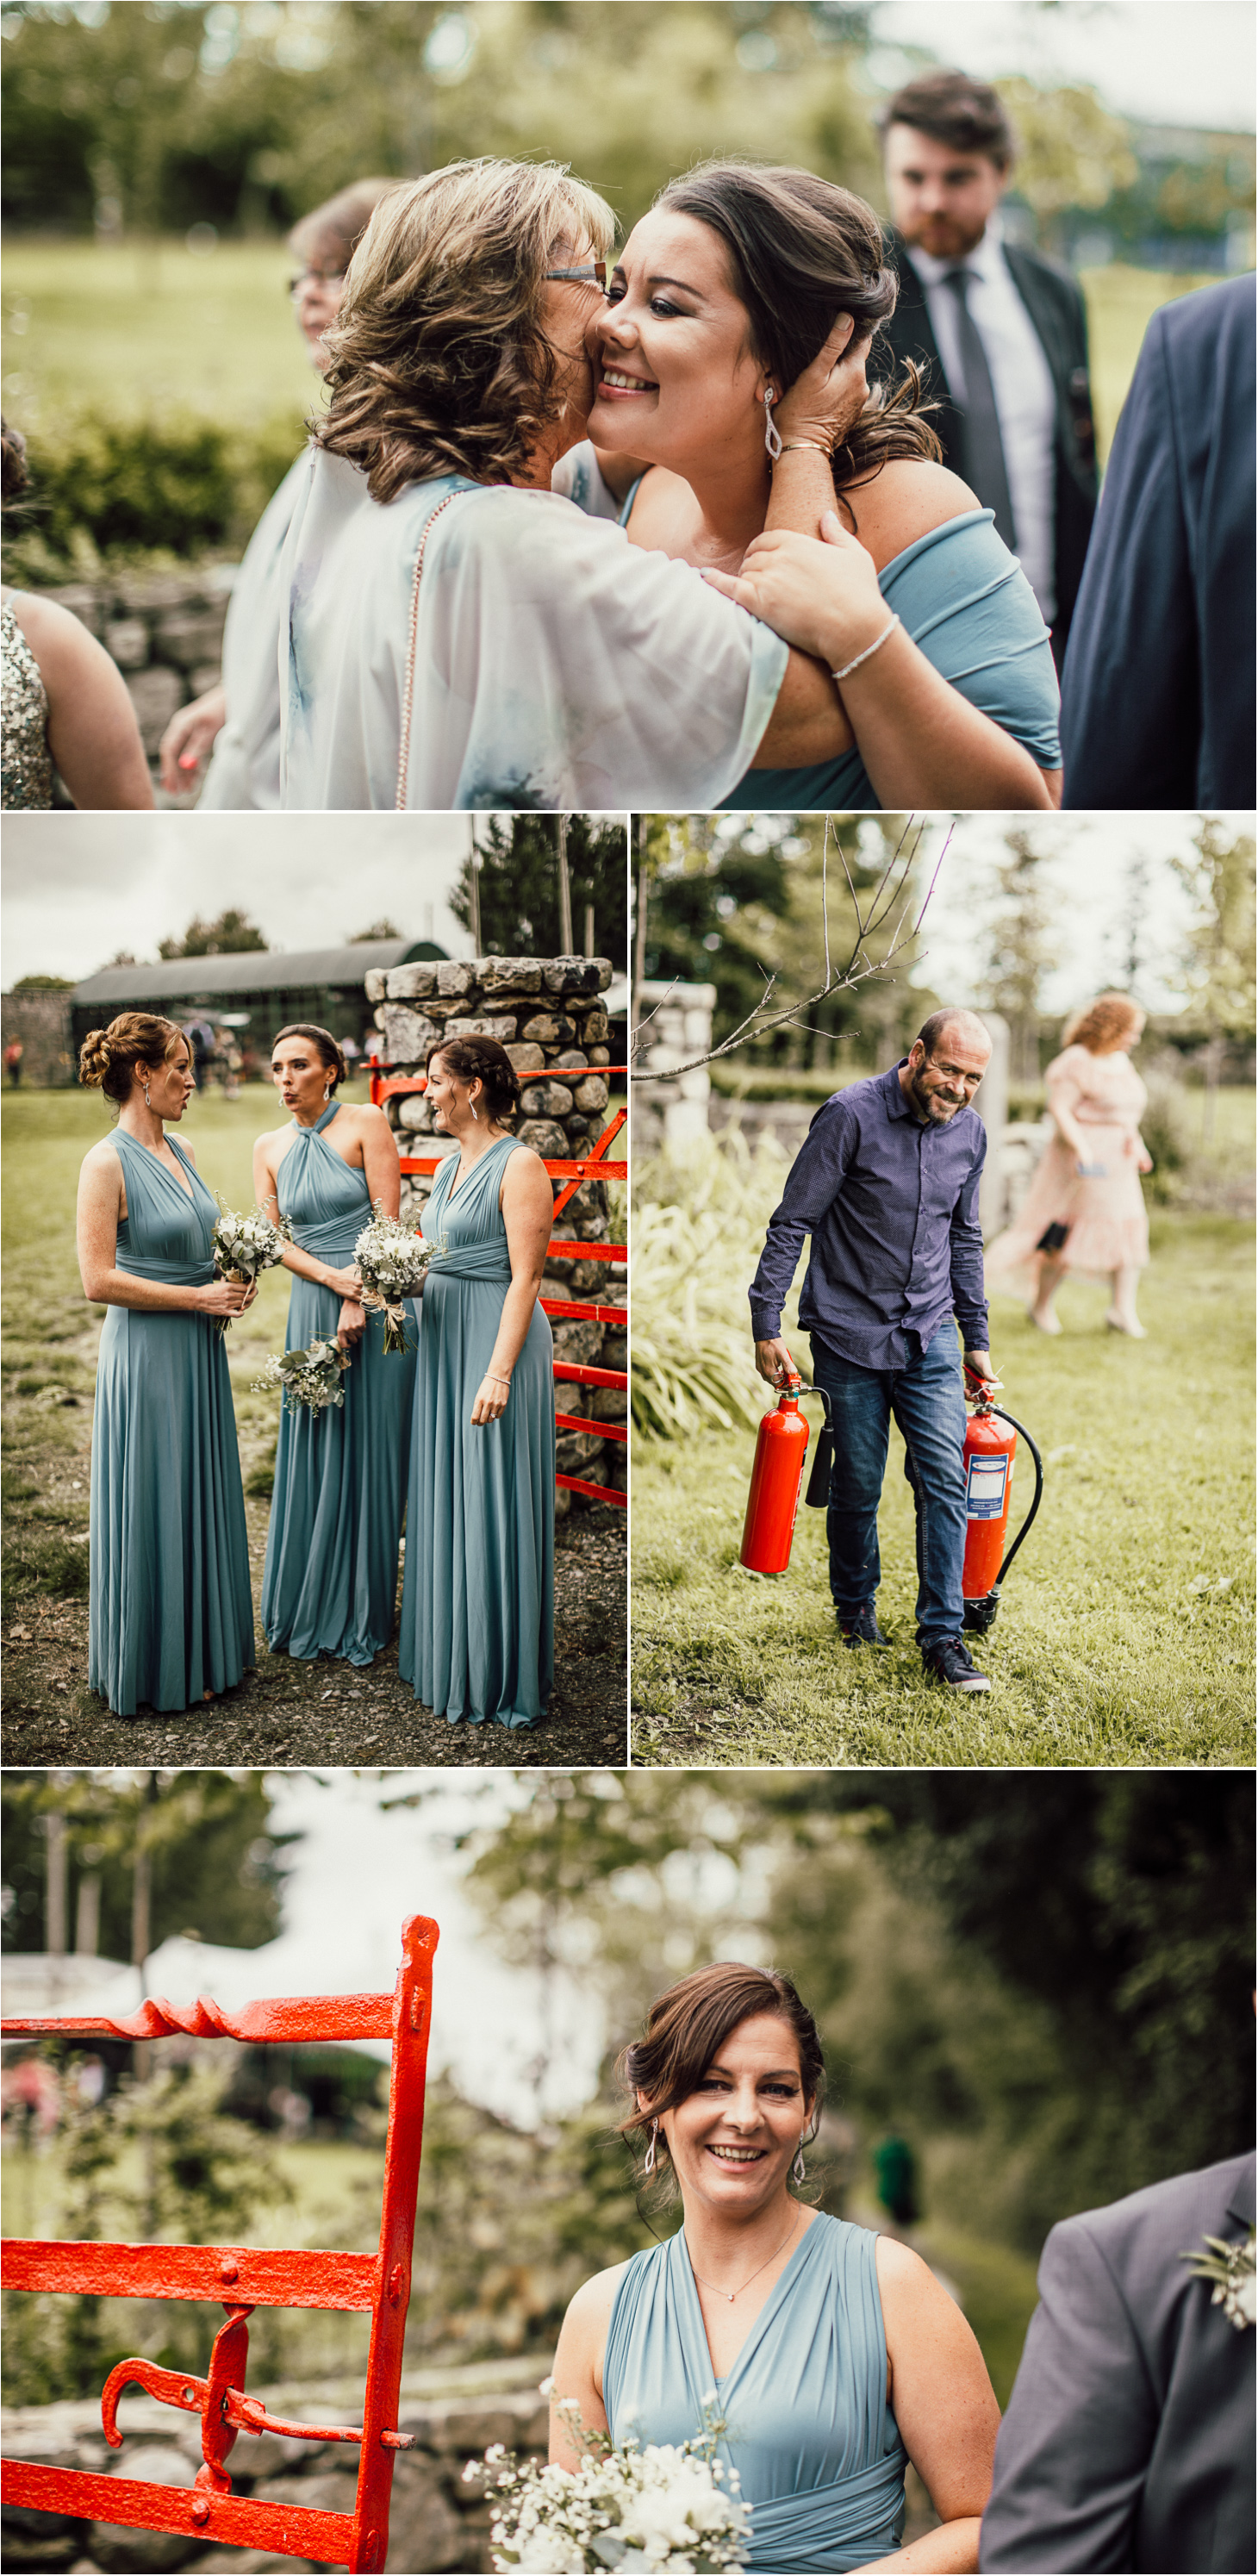 darren fitzpatrick photography. garden wedding.18